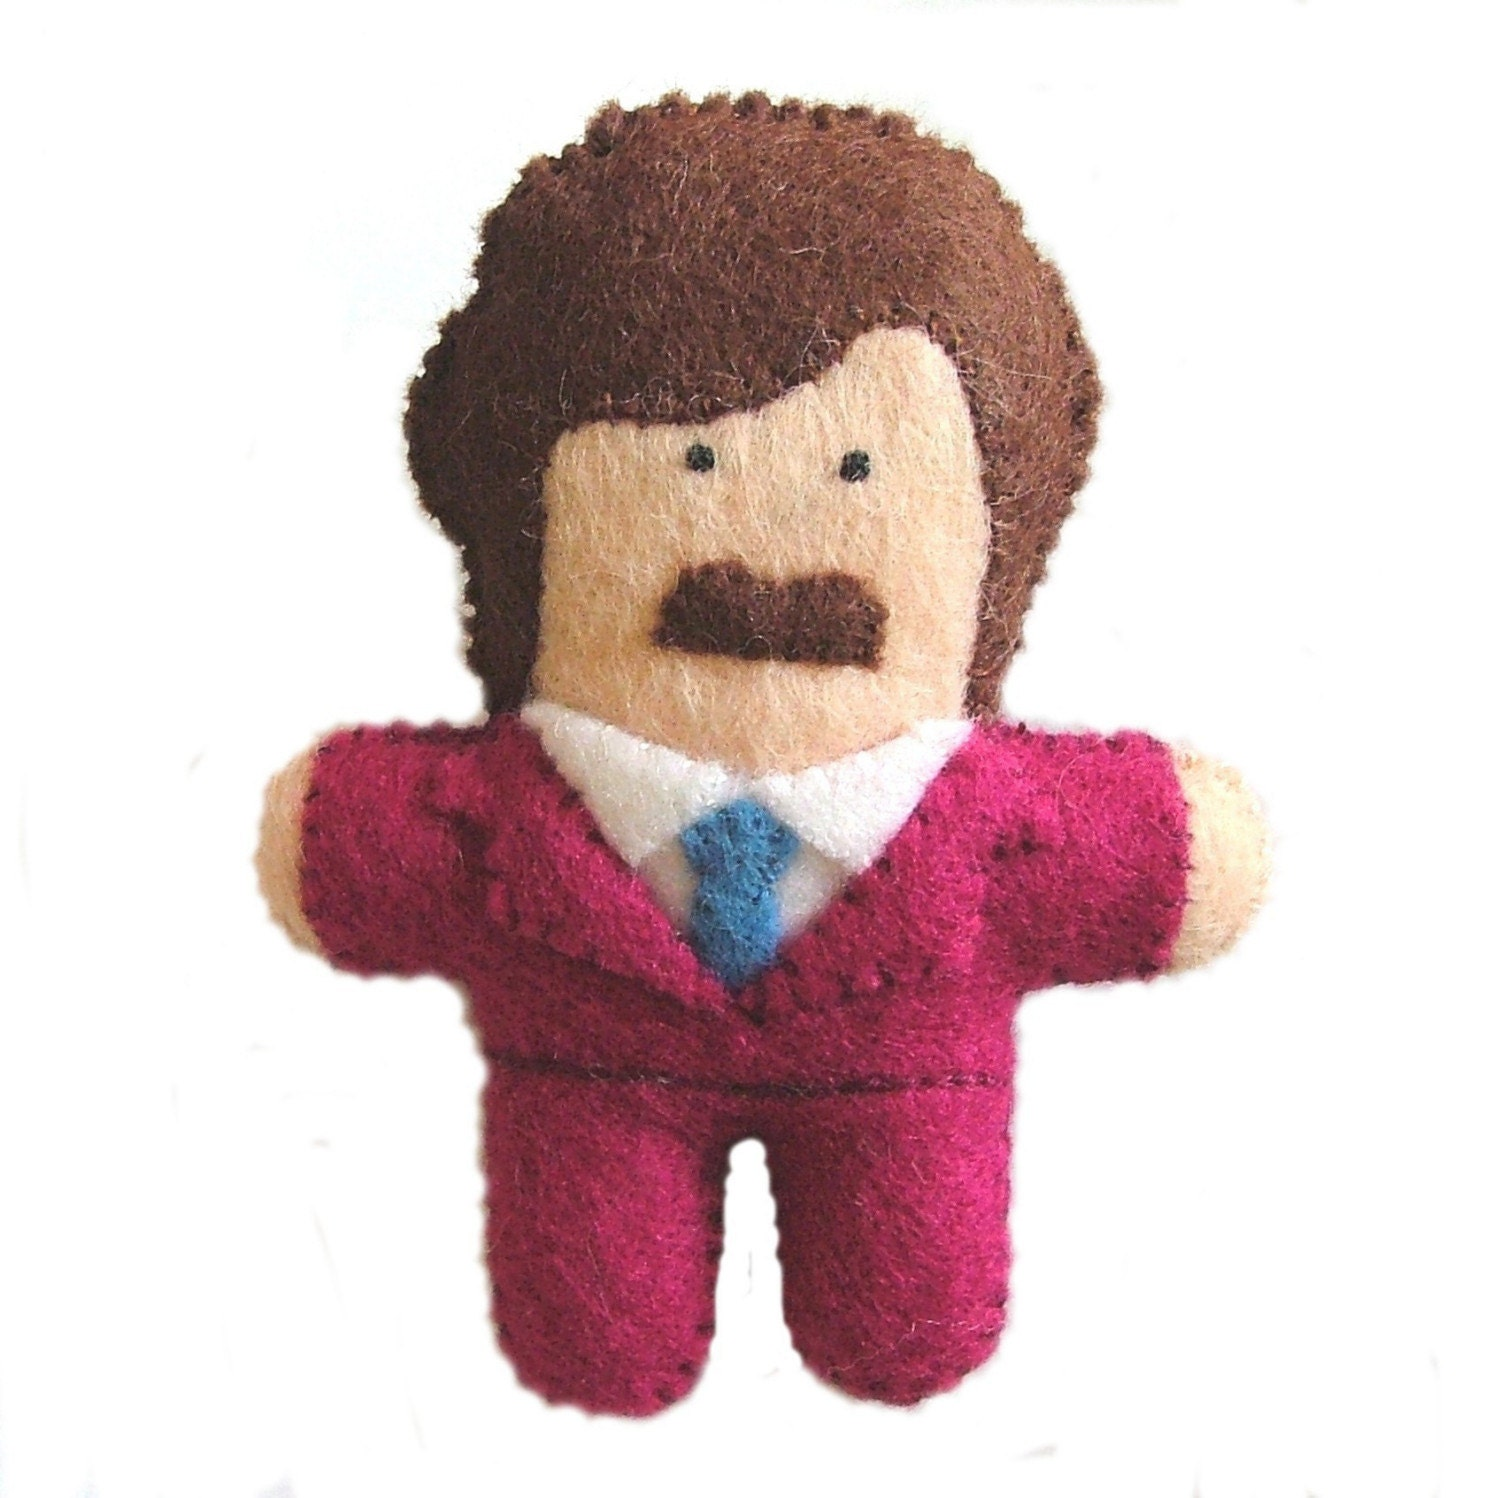 Little Anchorman - Ron Burgundy